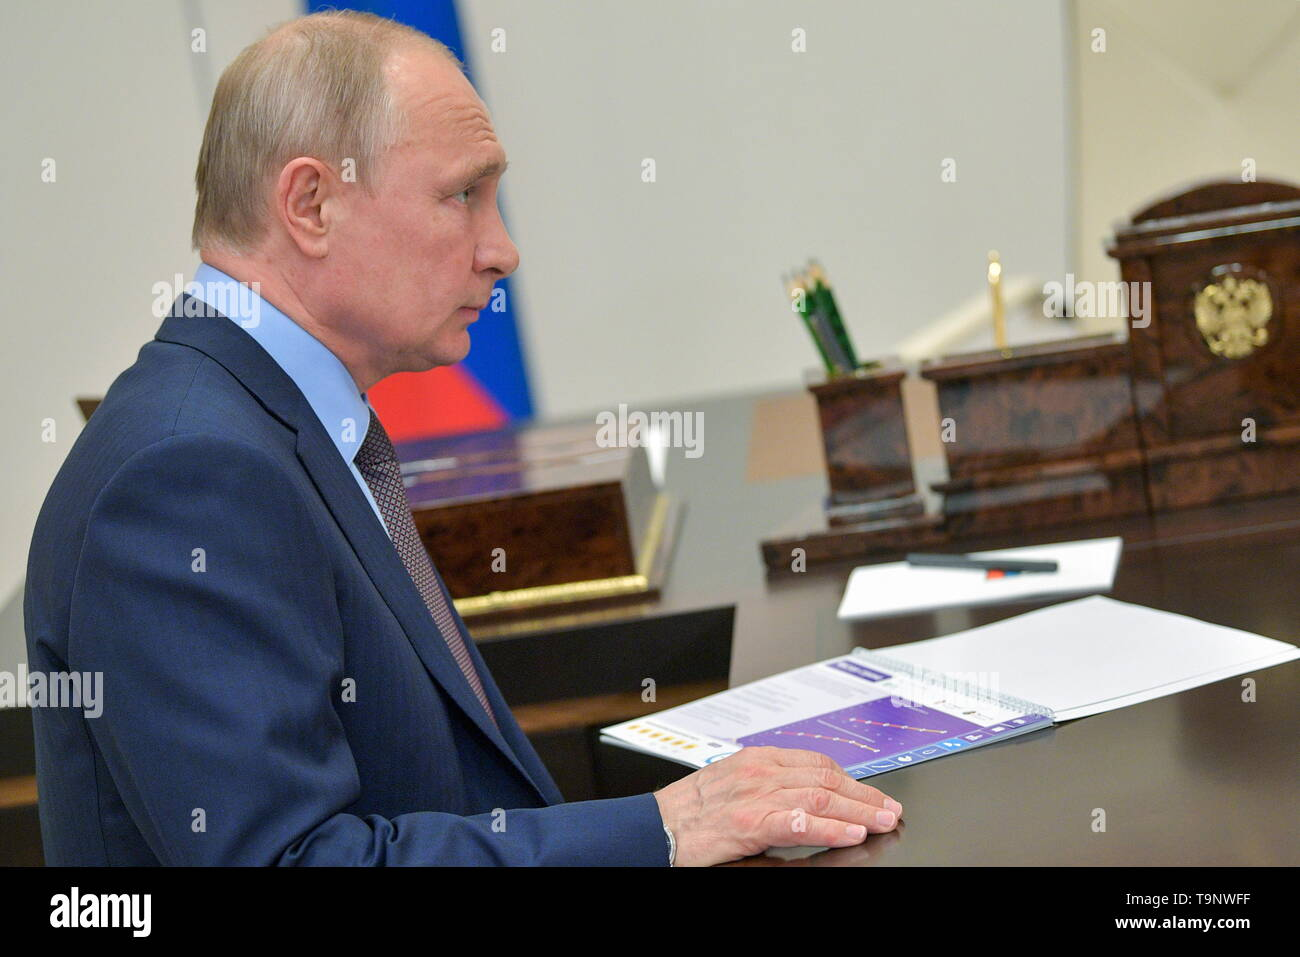 Moscow, Russia. 20th May, 2019. MOSCOW REGION, RUSSIA - MAY 20, 2019: Russia's President Vladimir Putin during a meeting with Natural Resources and Environment Minister Dmitry Kobylkin at Novo-Ogarevo residence. Alexei Druzhinin/Russian Presidential Press and Information Office/TASS Credit: ITAR-TASS News Agency/Alamy Live News Stock Photo